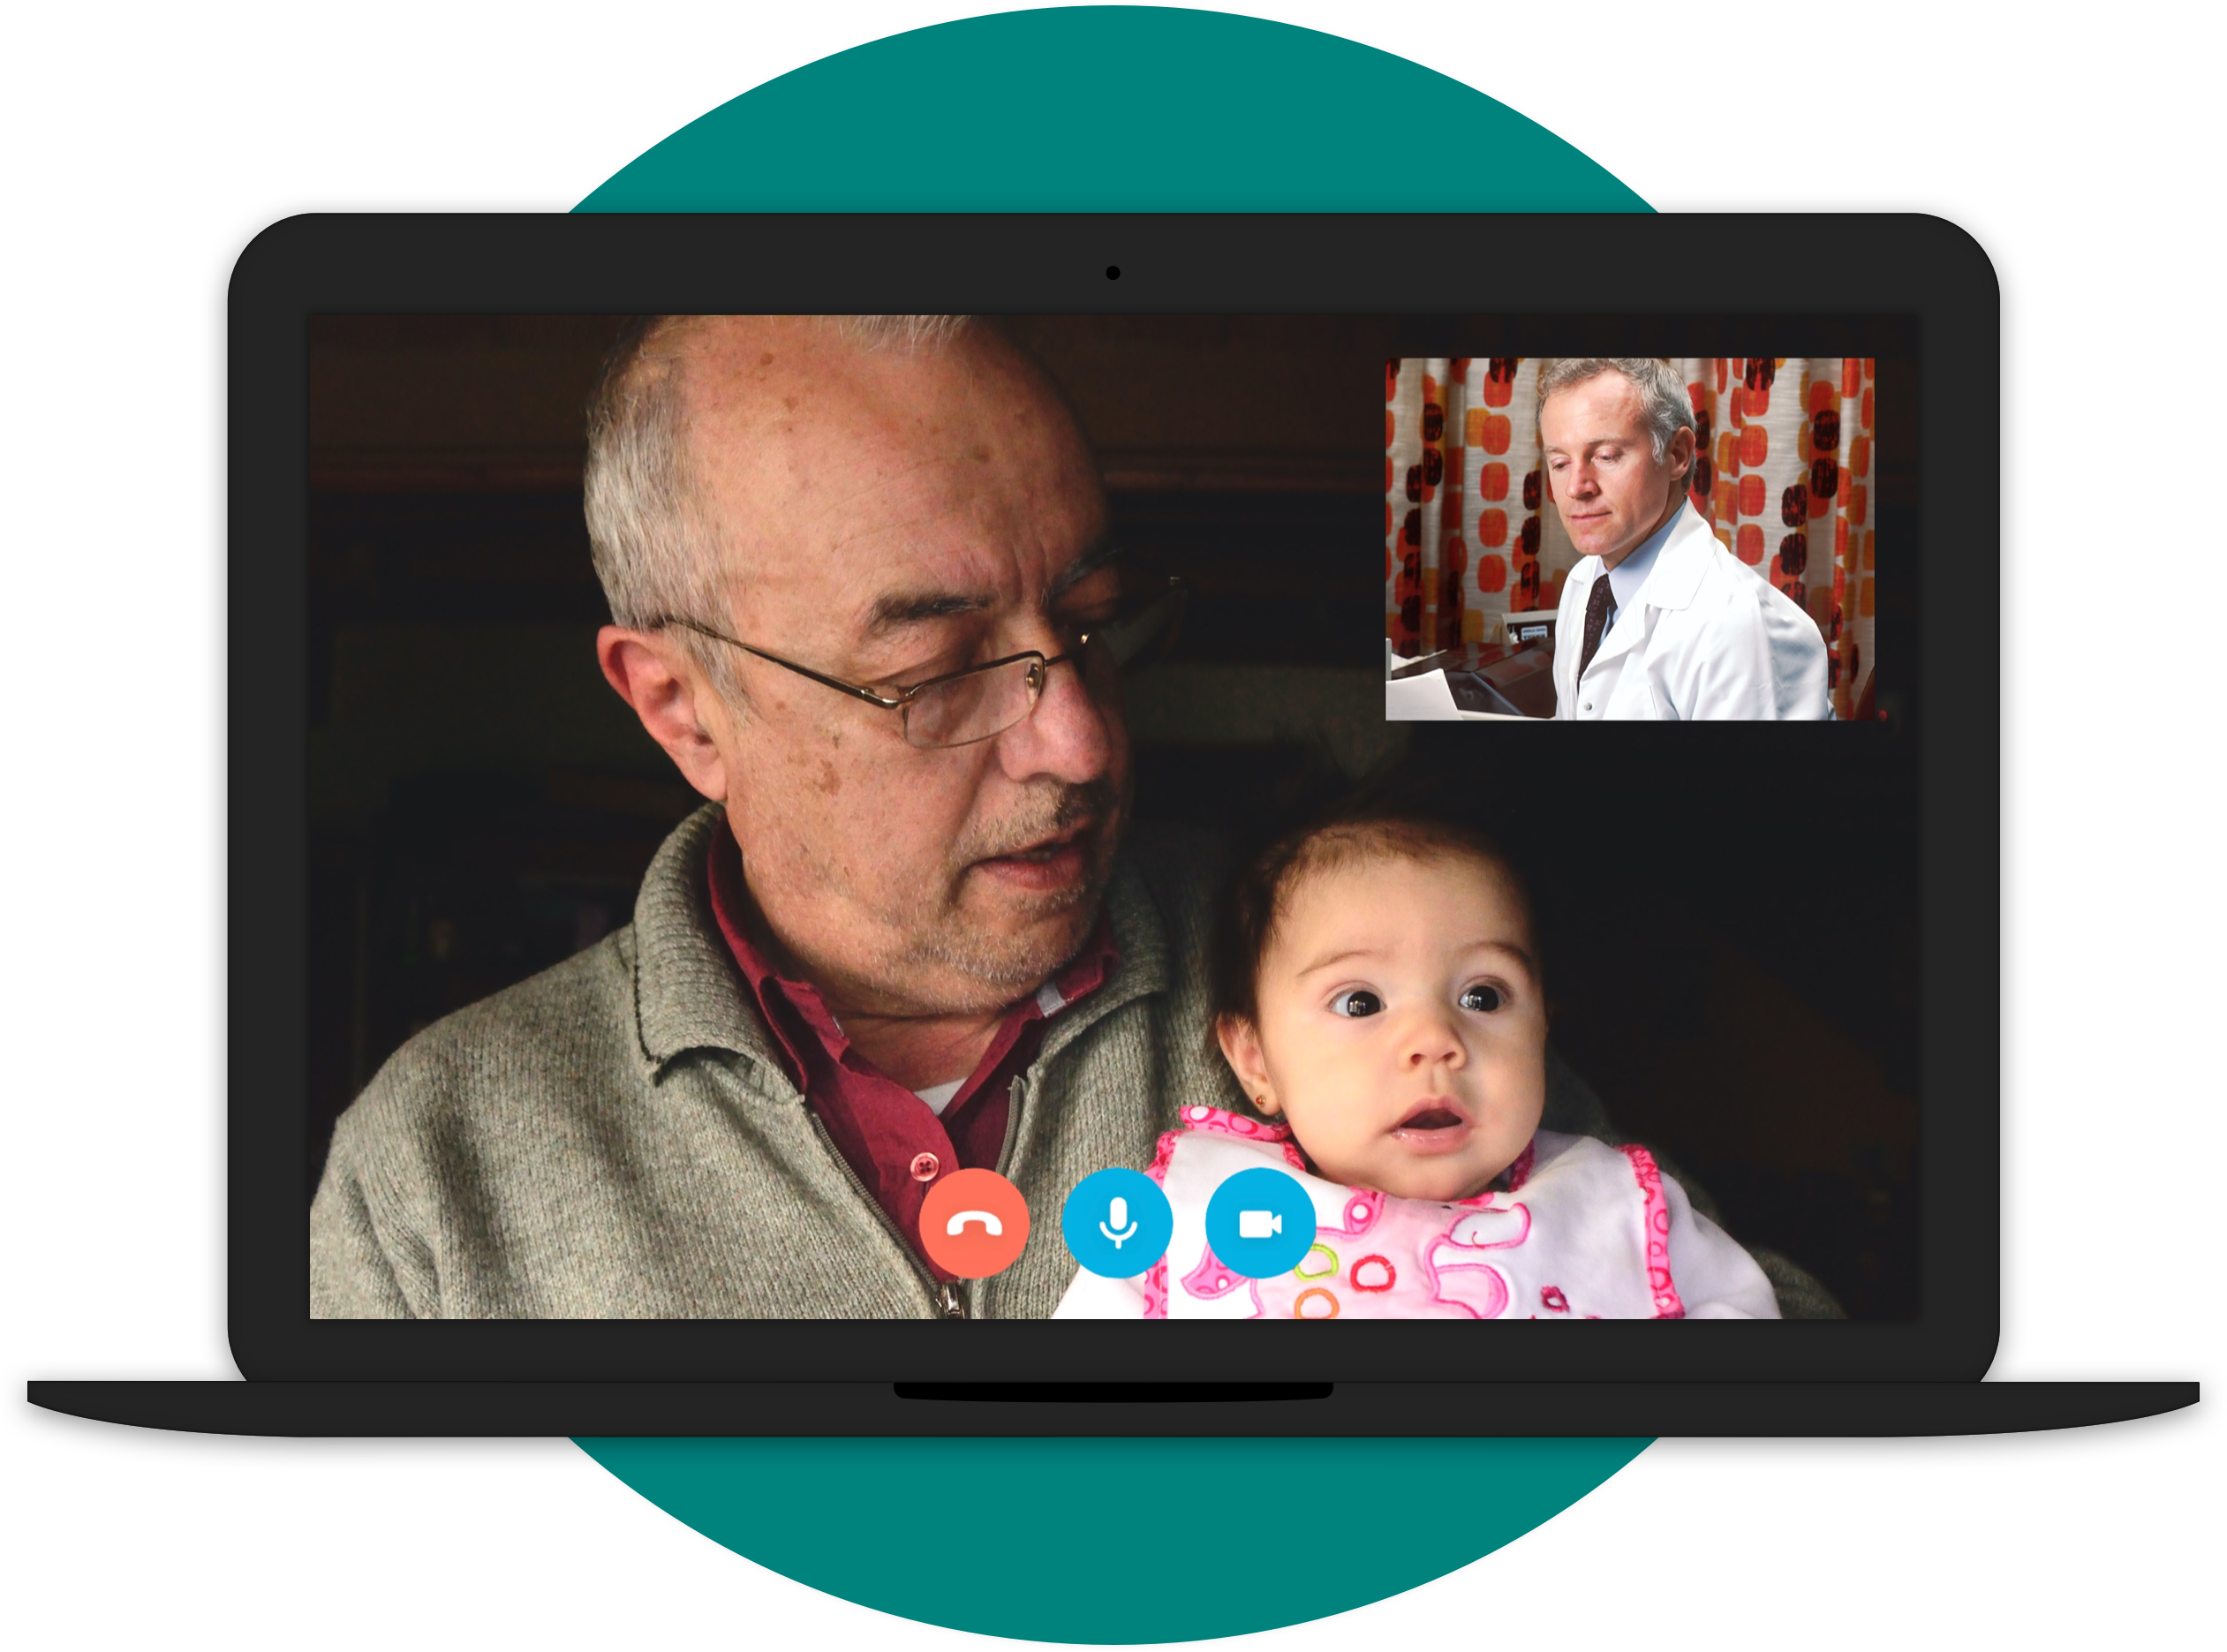 Older gentleman and infant on tablet interface attending a telehealth appointment